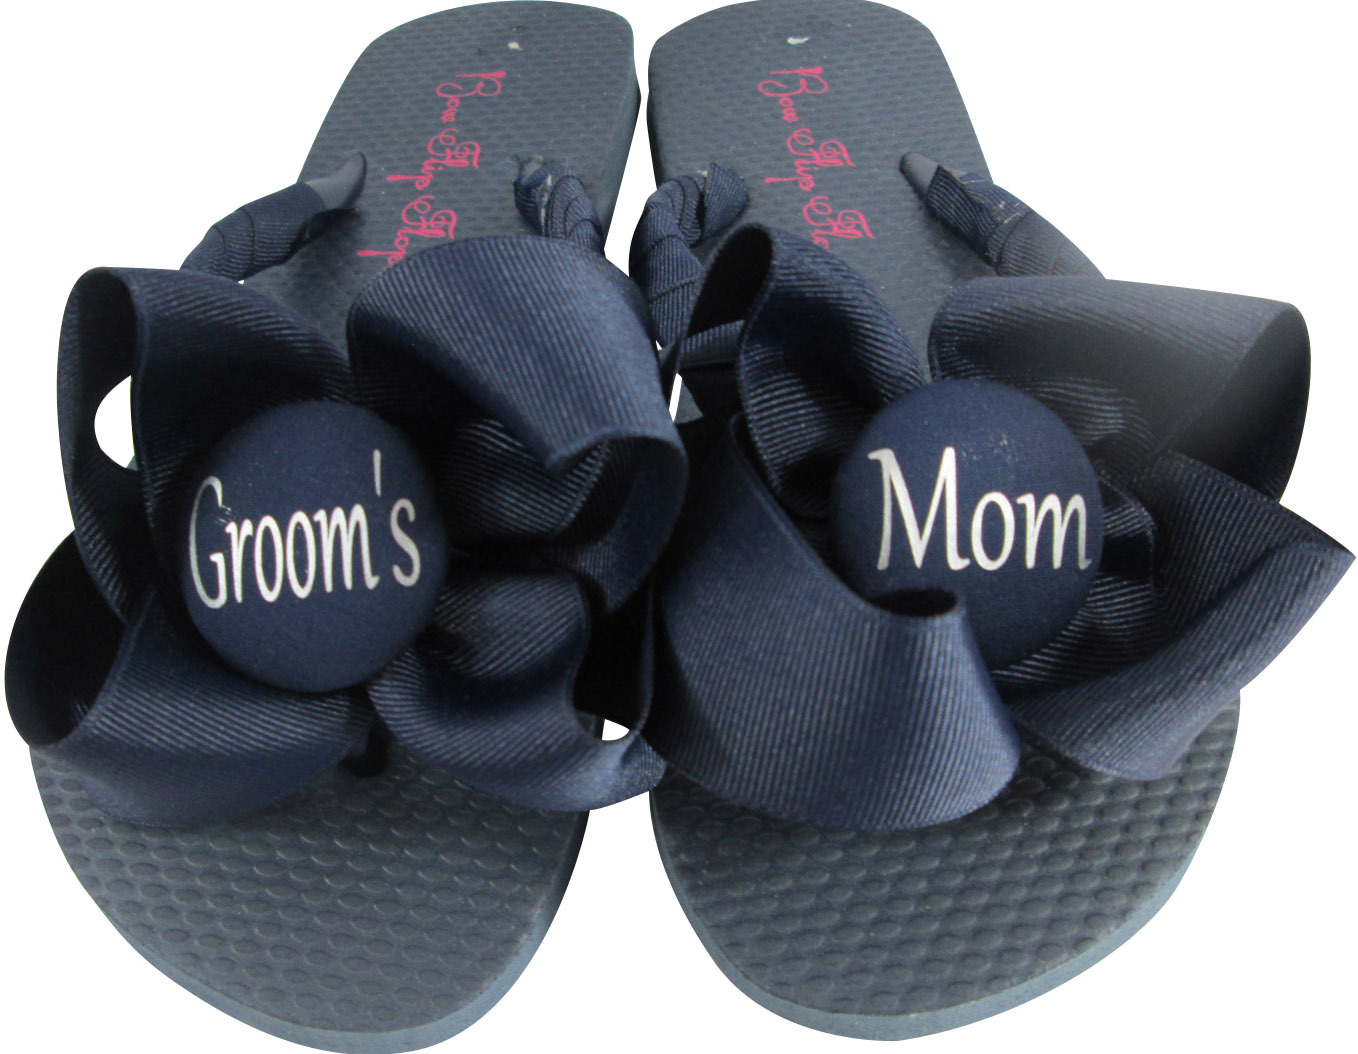 9a7c5a388 Coral Bow on Navy Flip Flops- Wedding  Groom s Mom or Bride s Mom